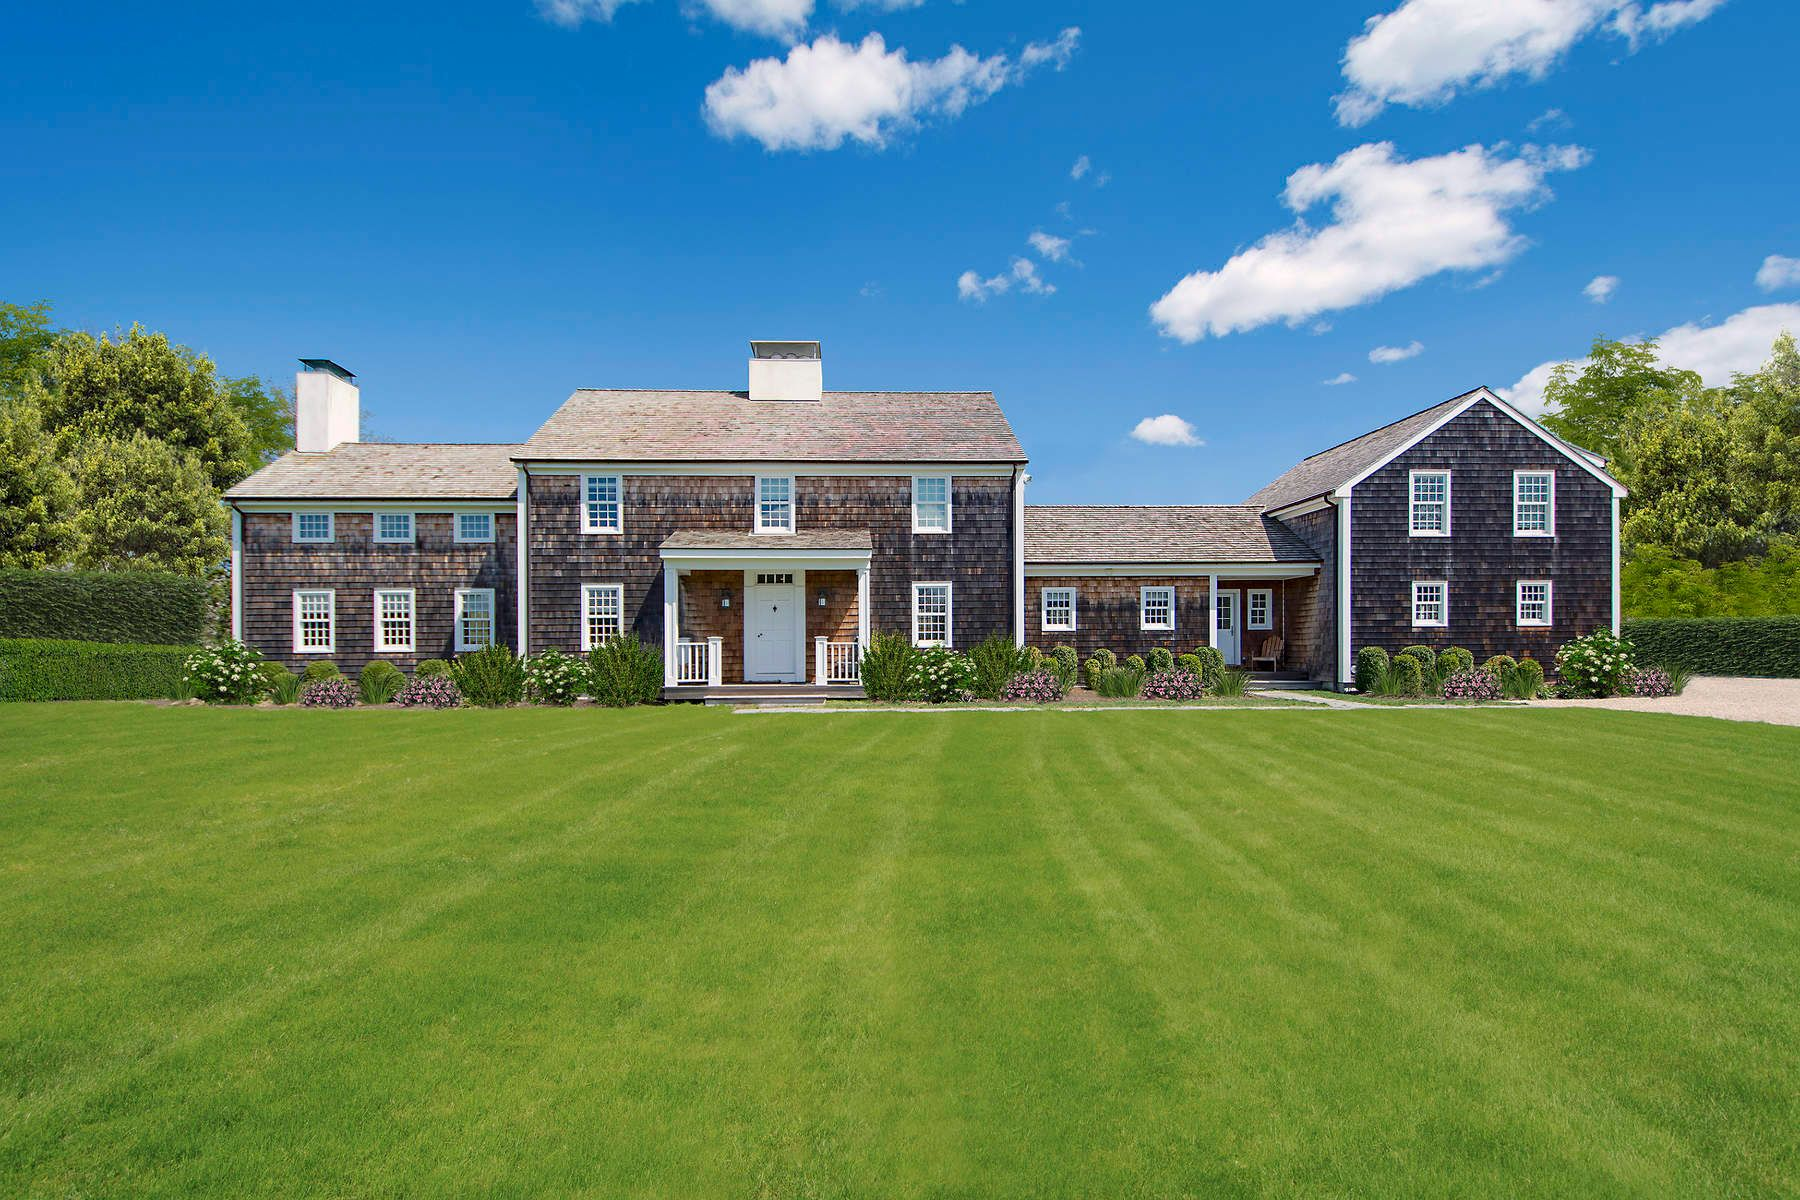 Single Family Homes for Sale at Classic Wainscott South w/ Pool & Tennis 15 Wainscott Hollow Road Wainscott, New York 11975 United States